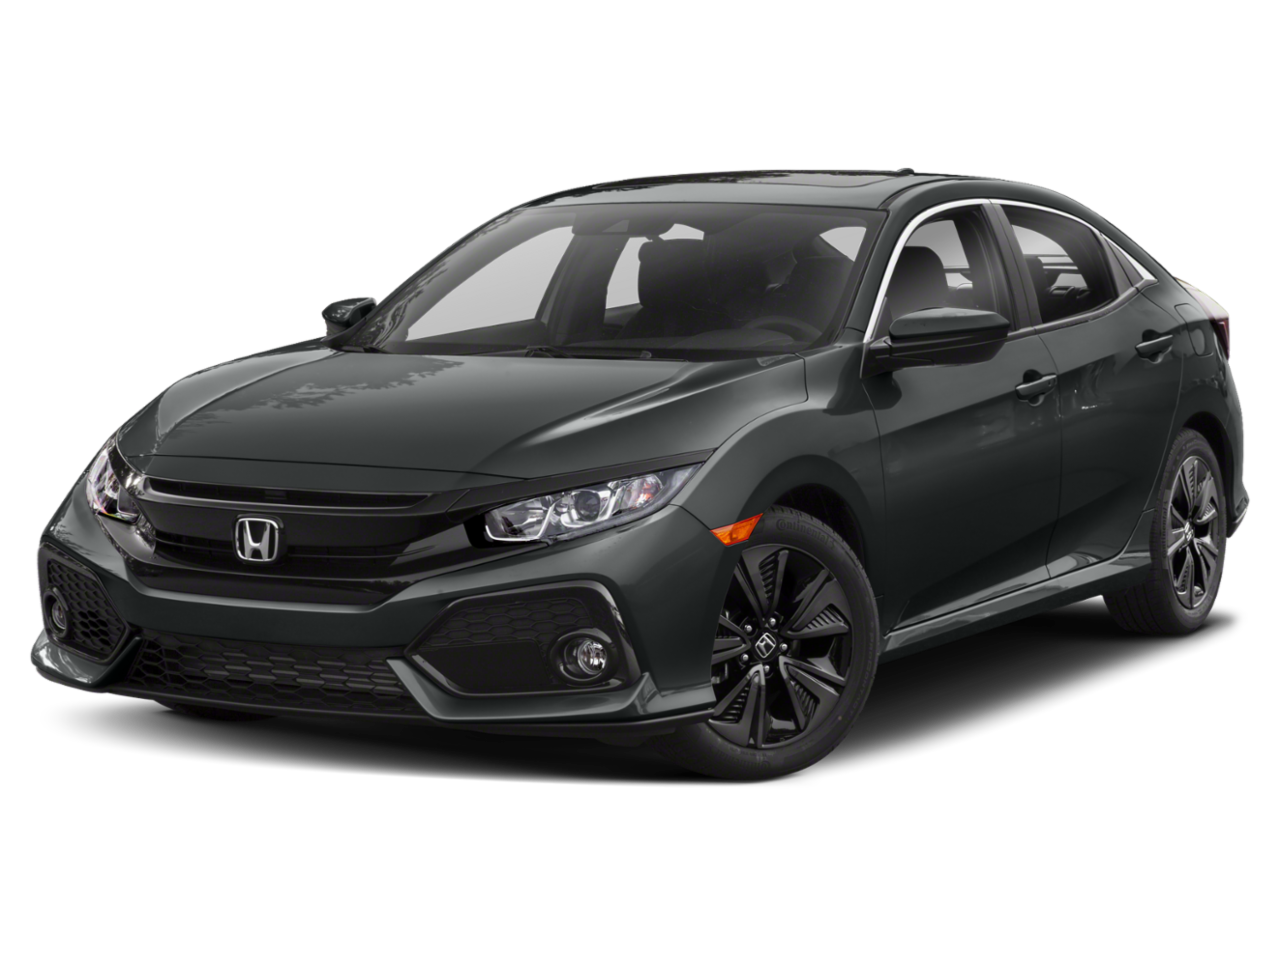 2019 Honda Civic Hatchback EX Hatchback